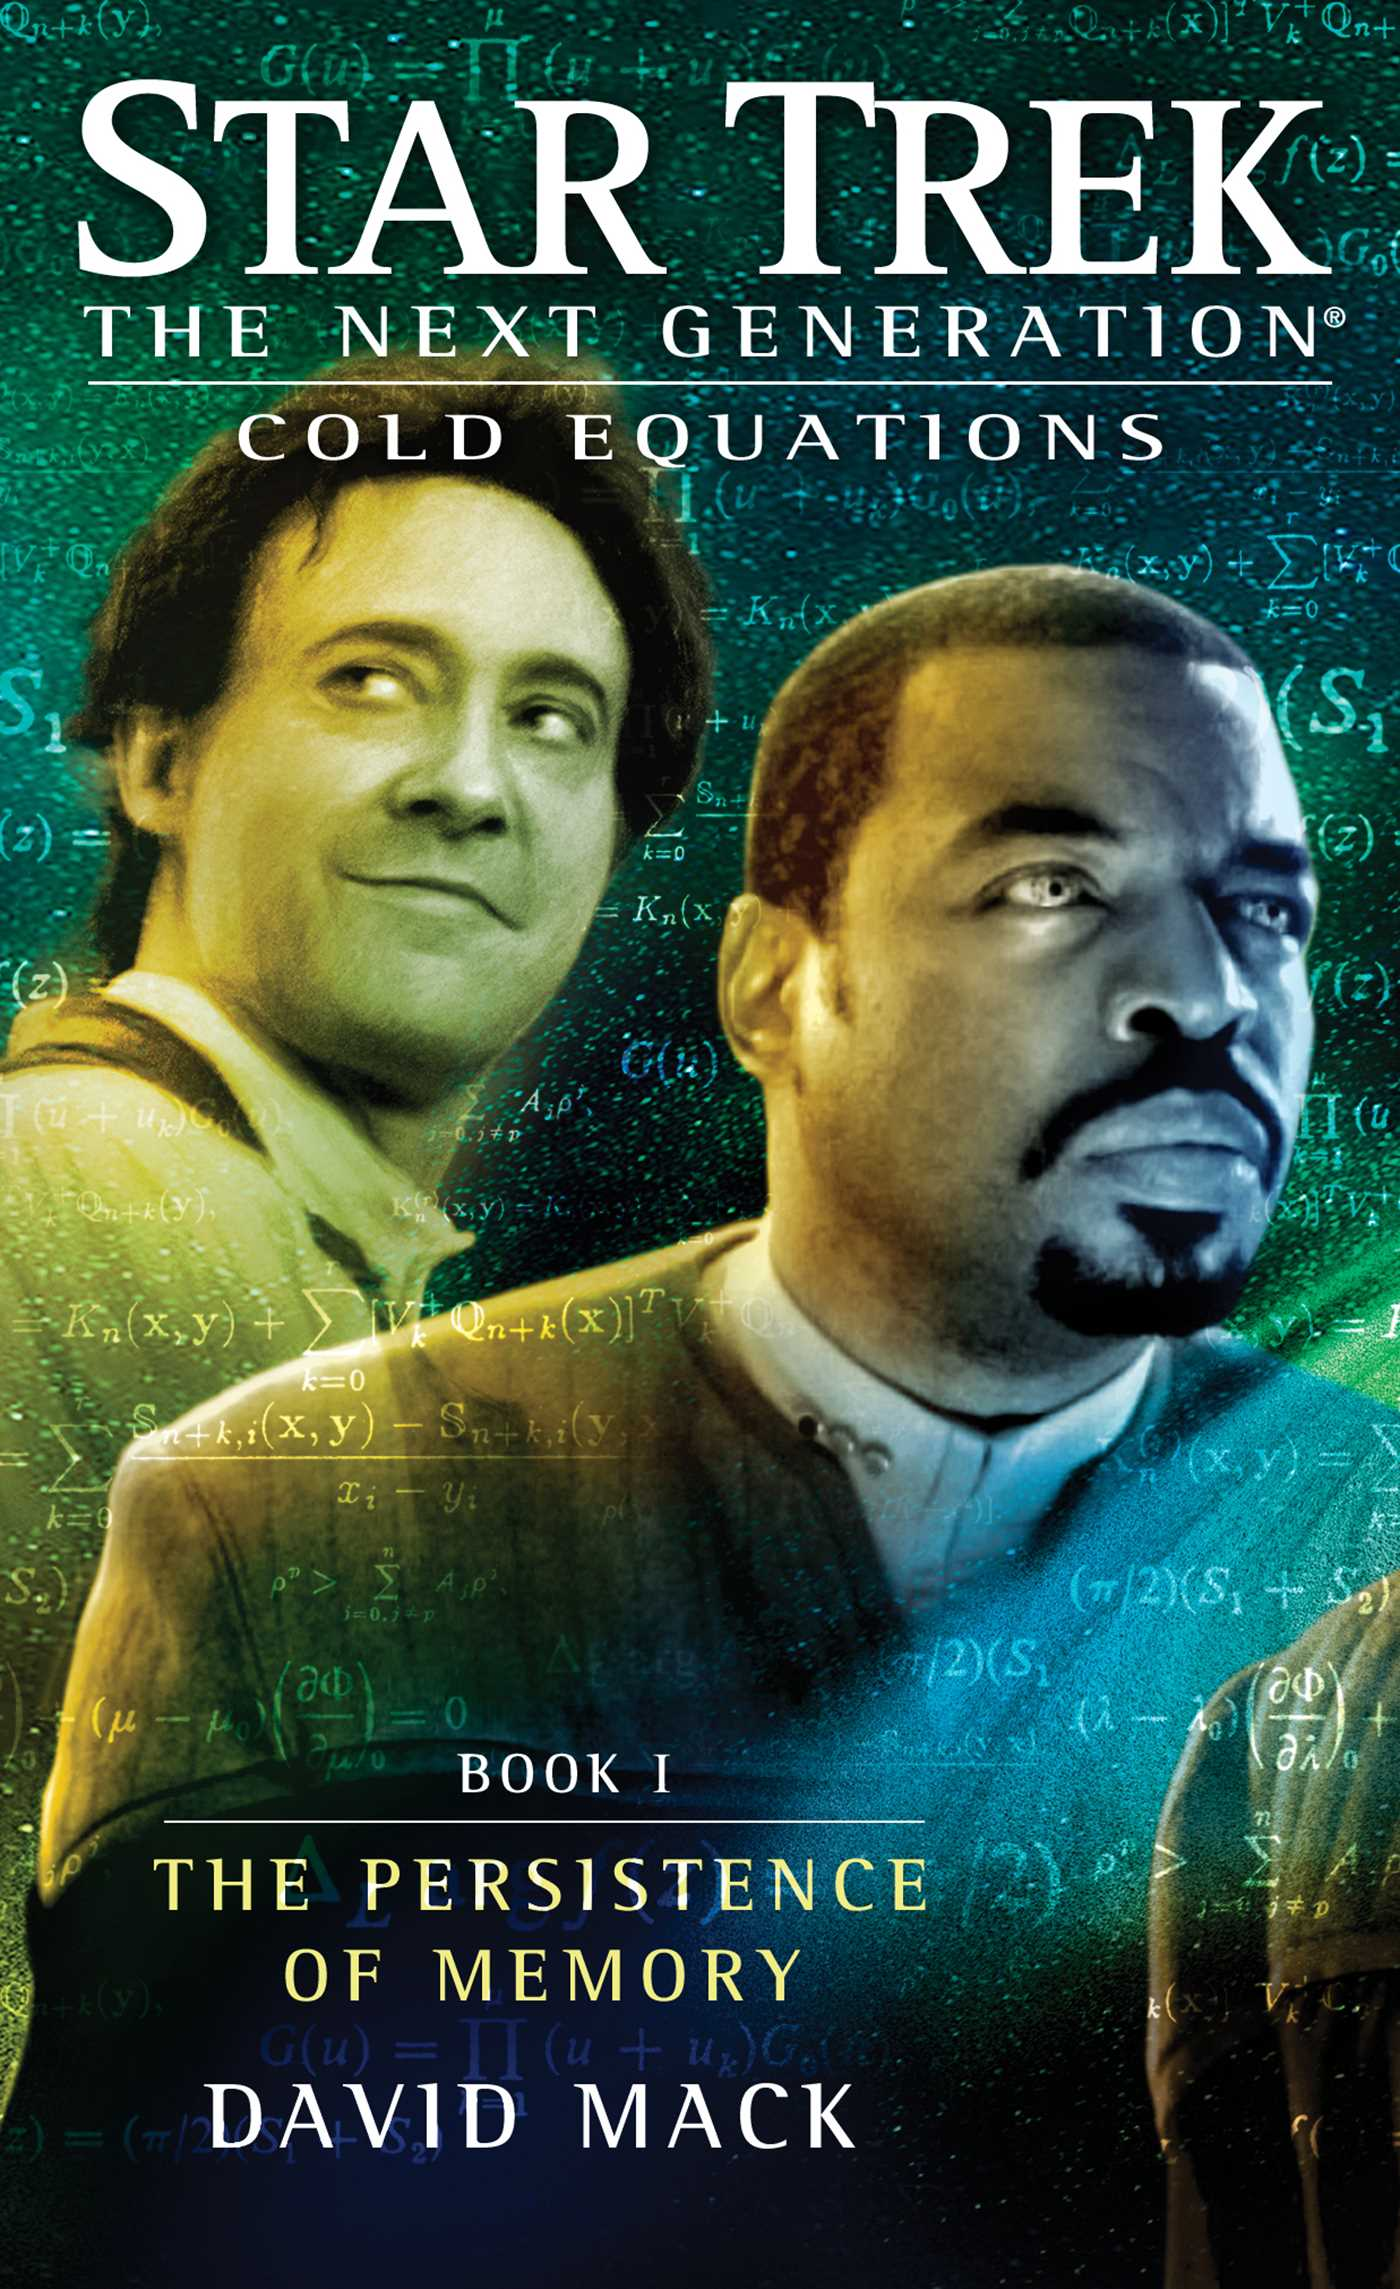 Star trek the next generation cold equations the persistence of memory 9781451650754 hr